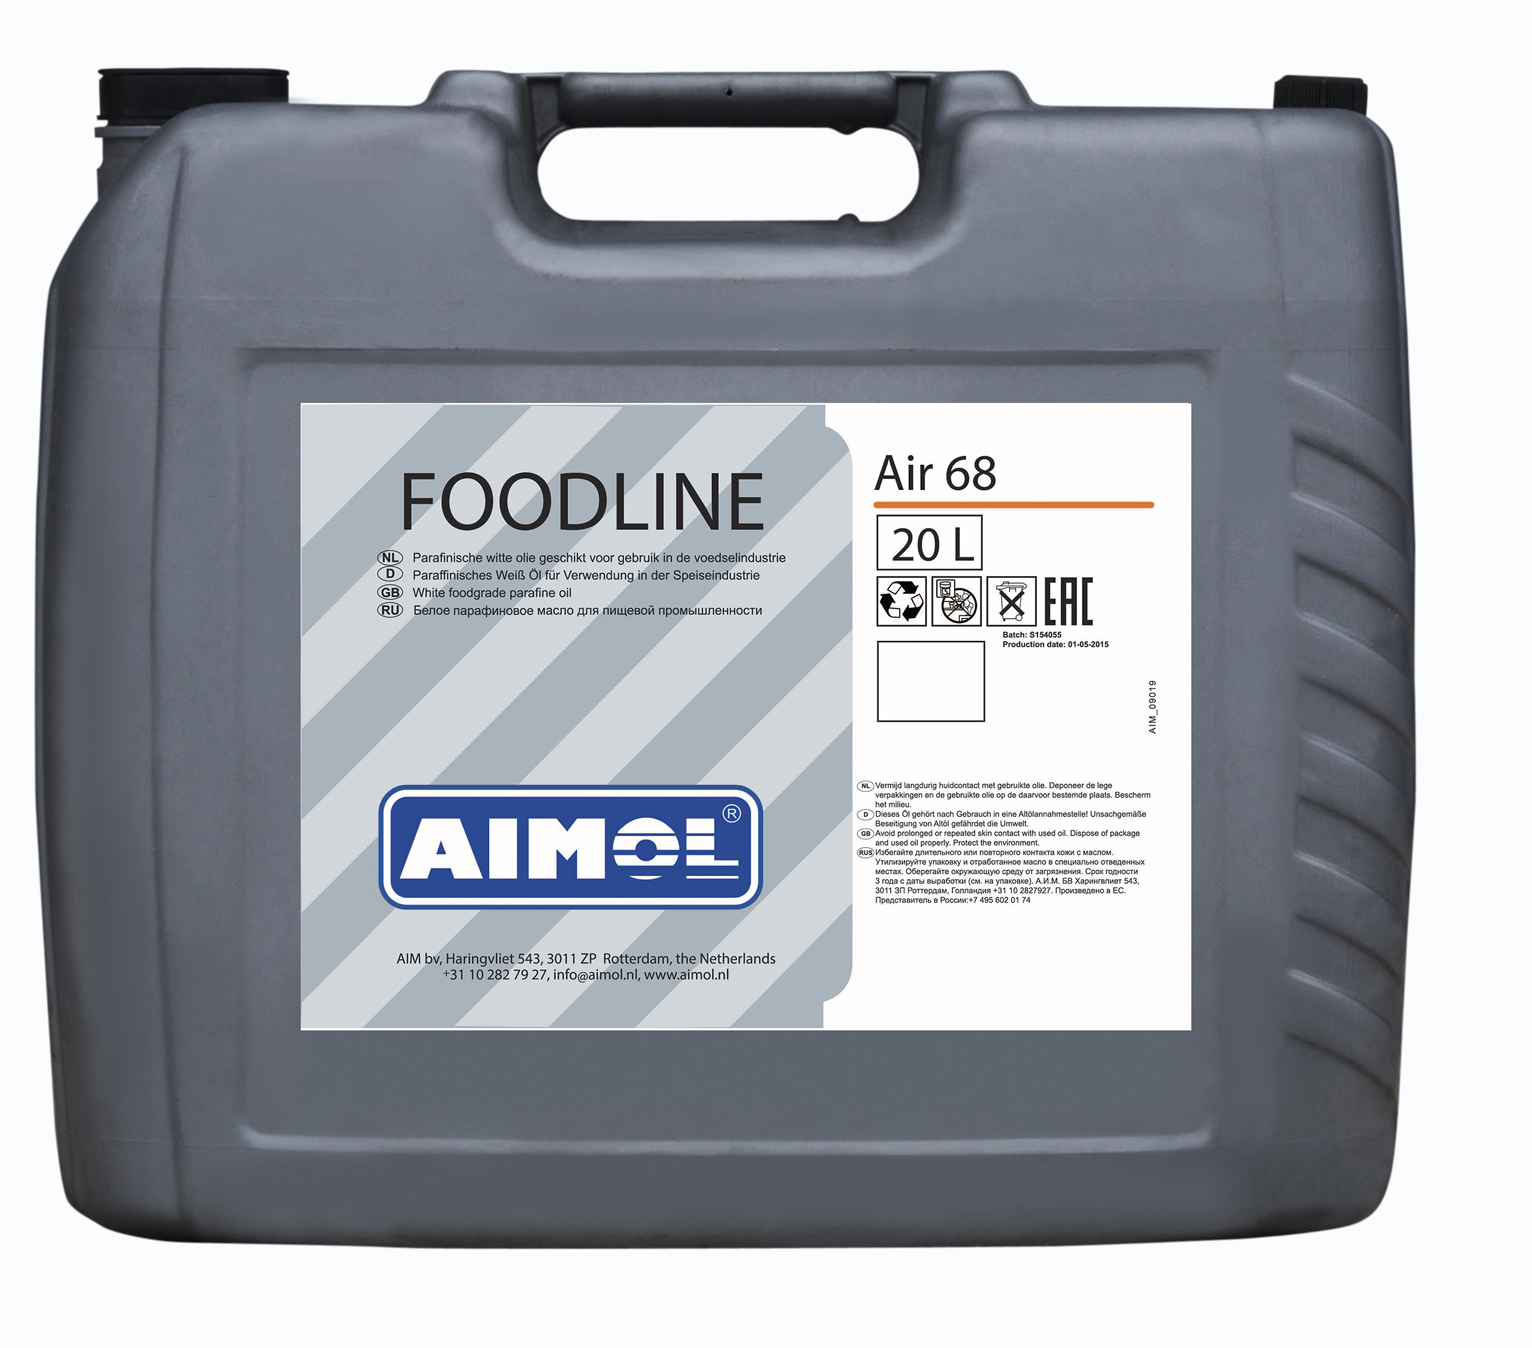 AIMOL-M FOODLINE AIR 68(AIMOL-M FOODMAX AIR 68)